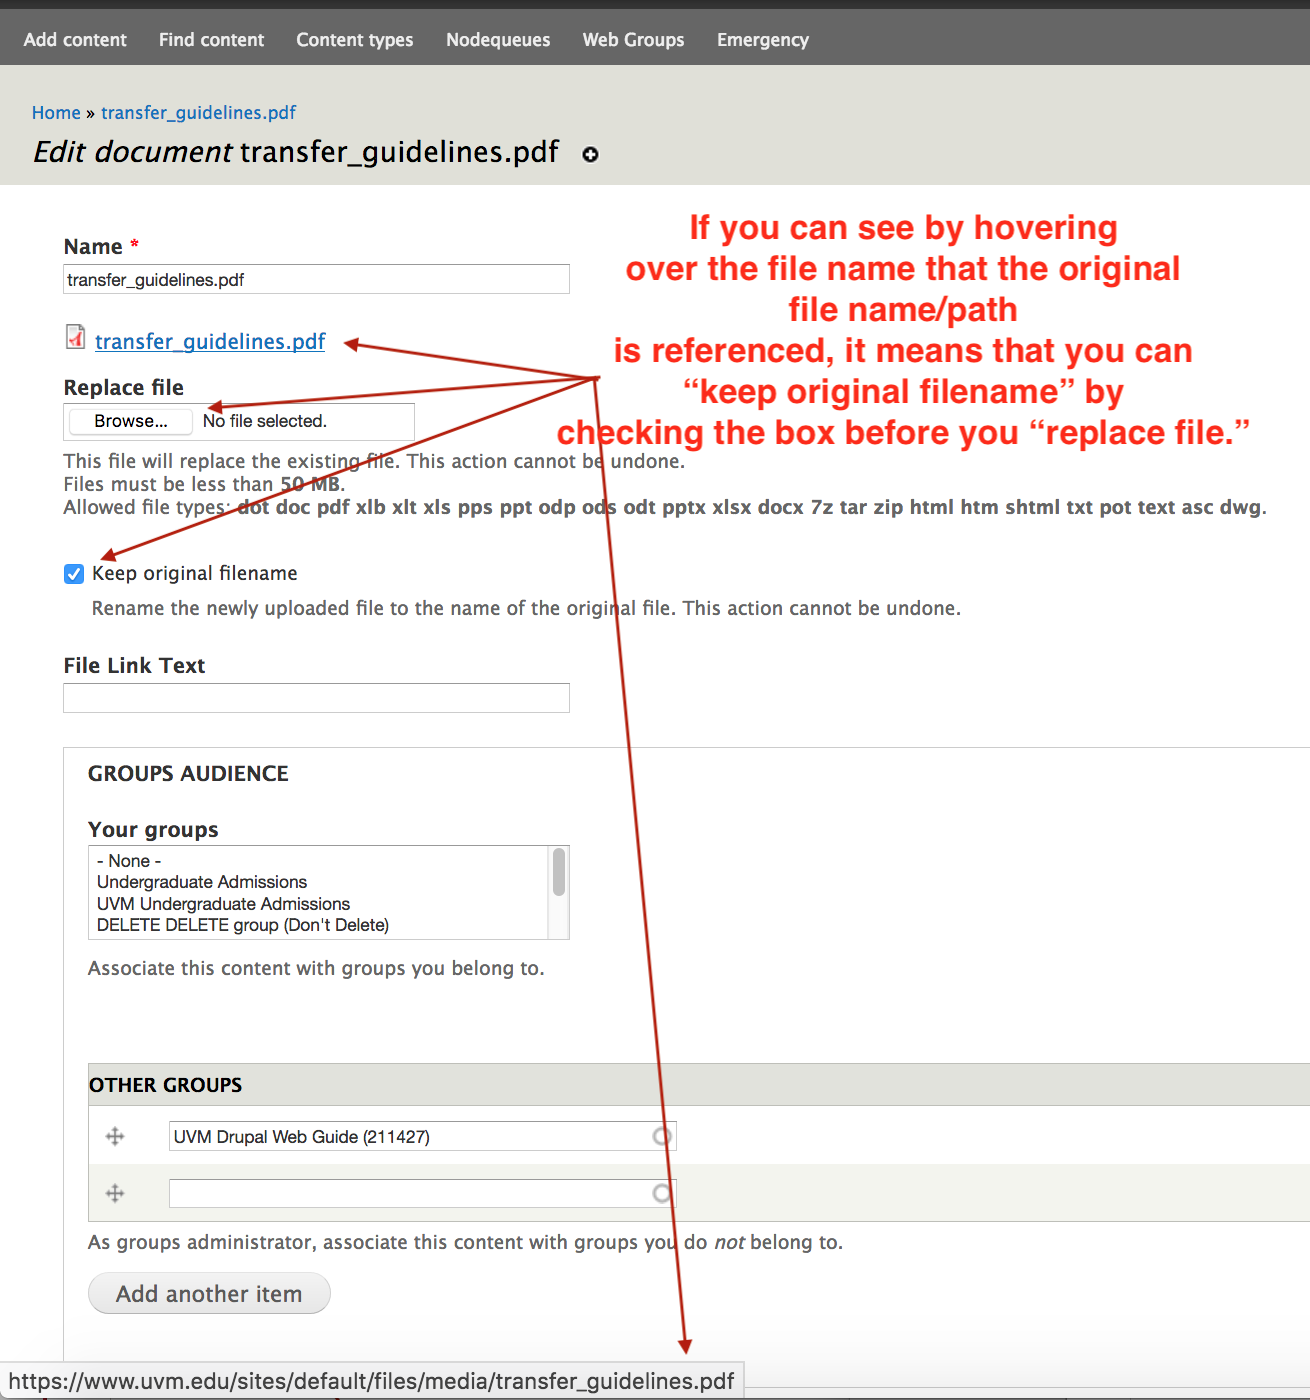 """Screenshot of Drupal interface -- if you can see by hovering over the file name that the original file name is referenced, it means that you can """"keep original filename"""" checked when you replace file."""